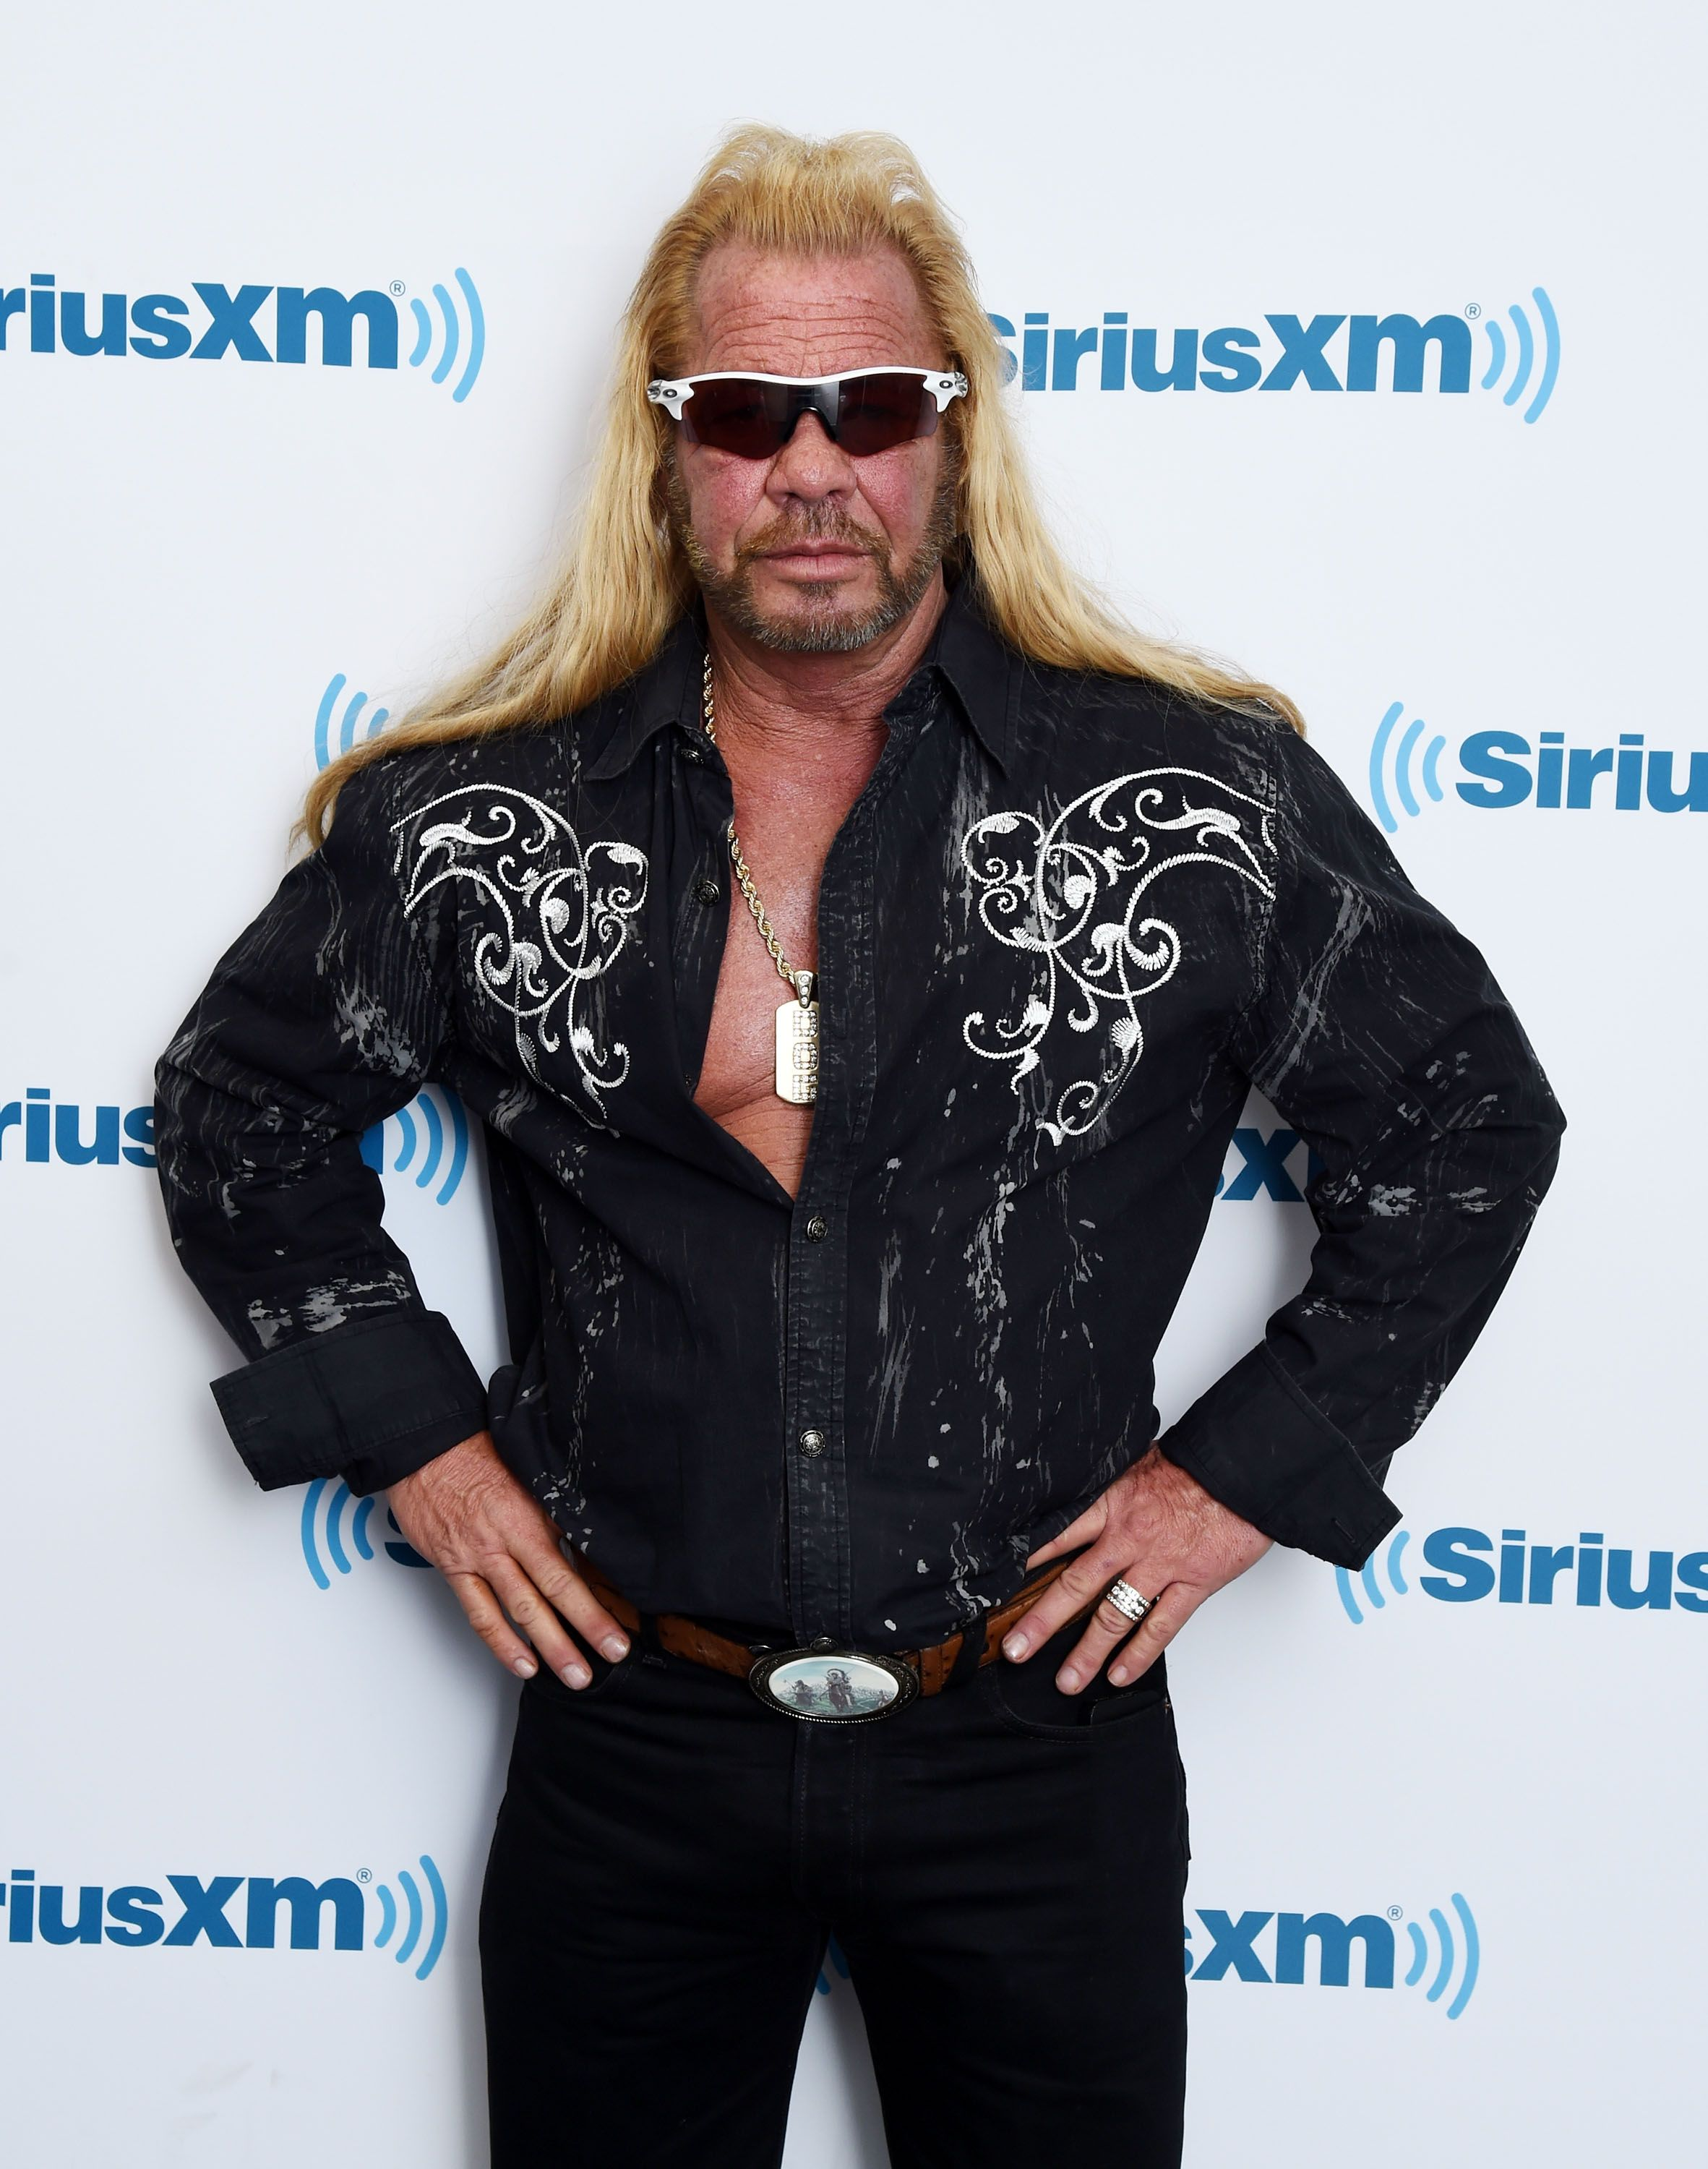 Dog The Bounty Hunter Is Engaged To Girlfriend Francie Frane - Fame10